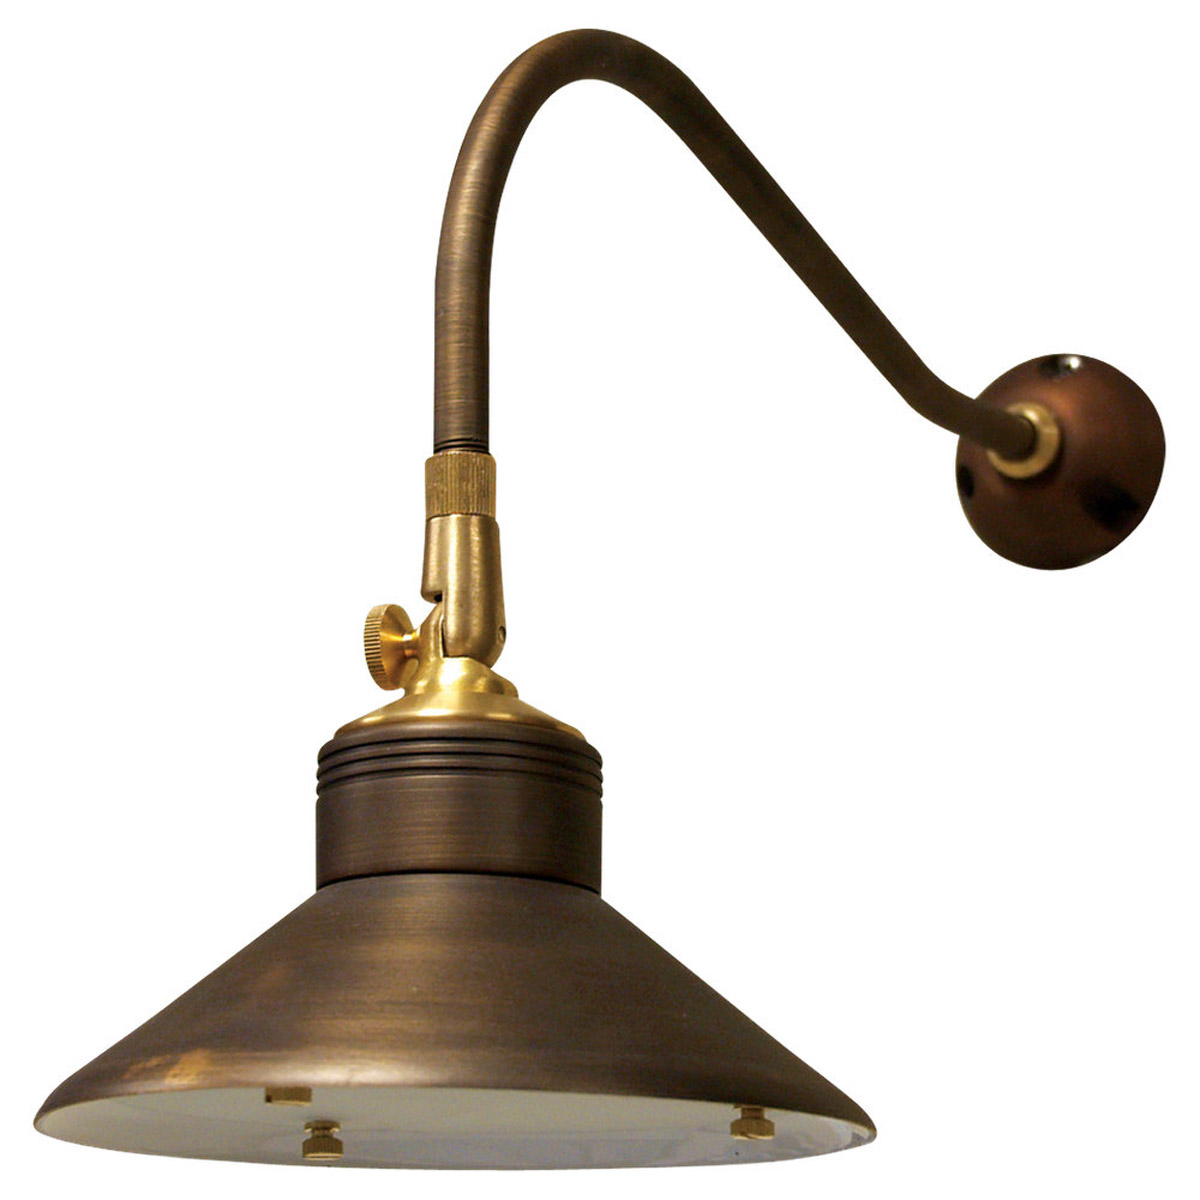 Sea Gull Lighting Signature 1 Light Landscape Light in Weathered Brass 91461-147 photo